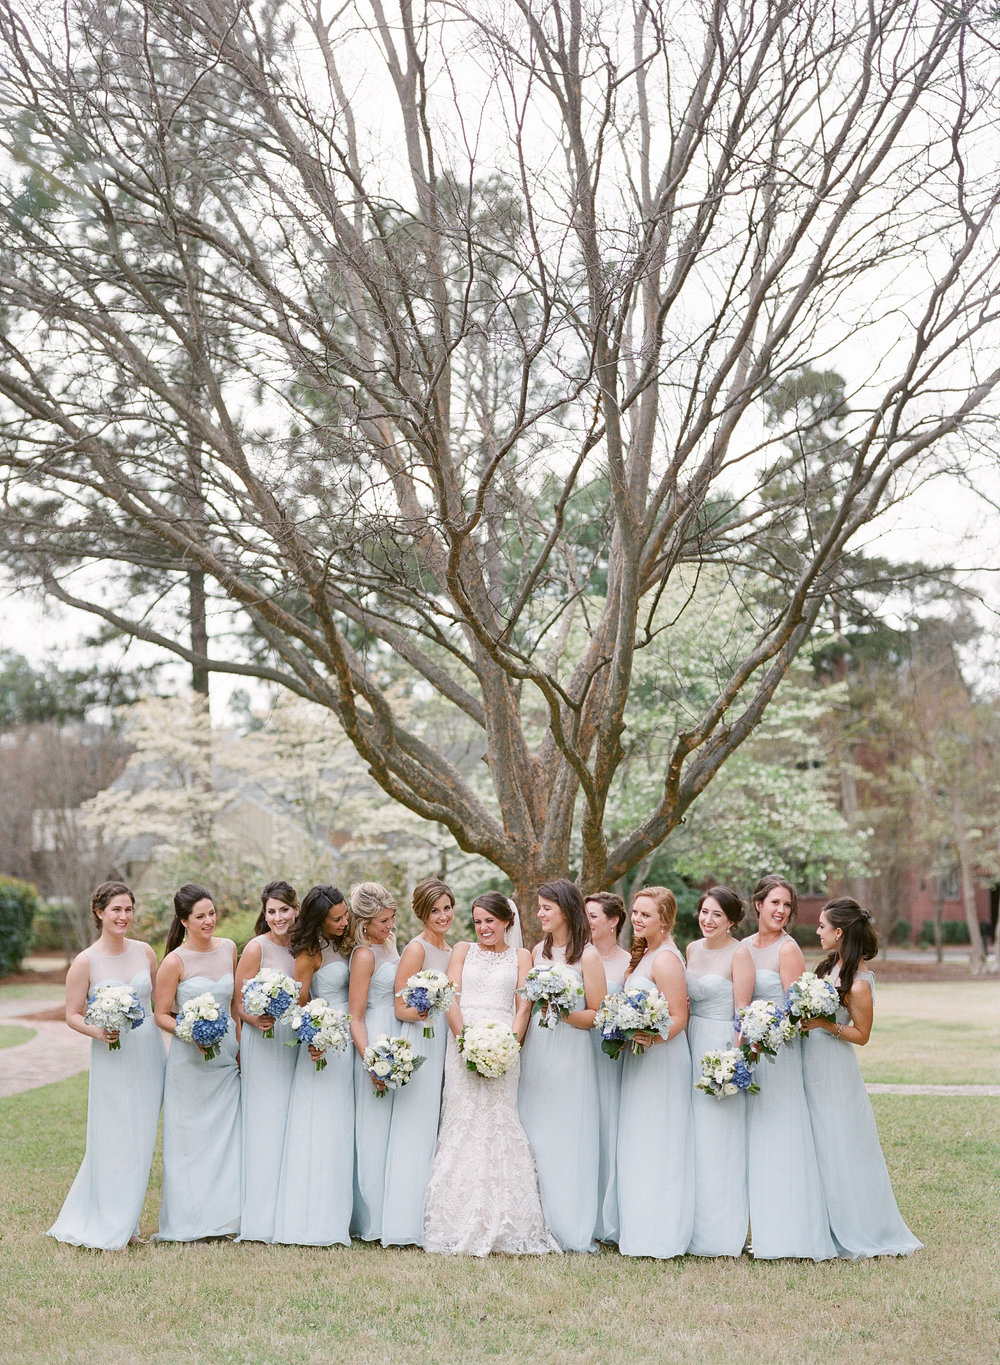 Robin's egg blue bridesmaid dresses, spring wedding